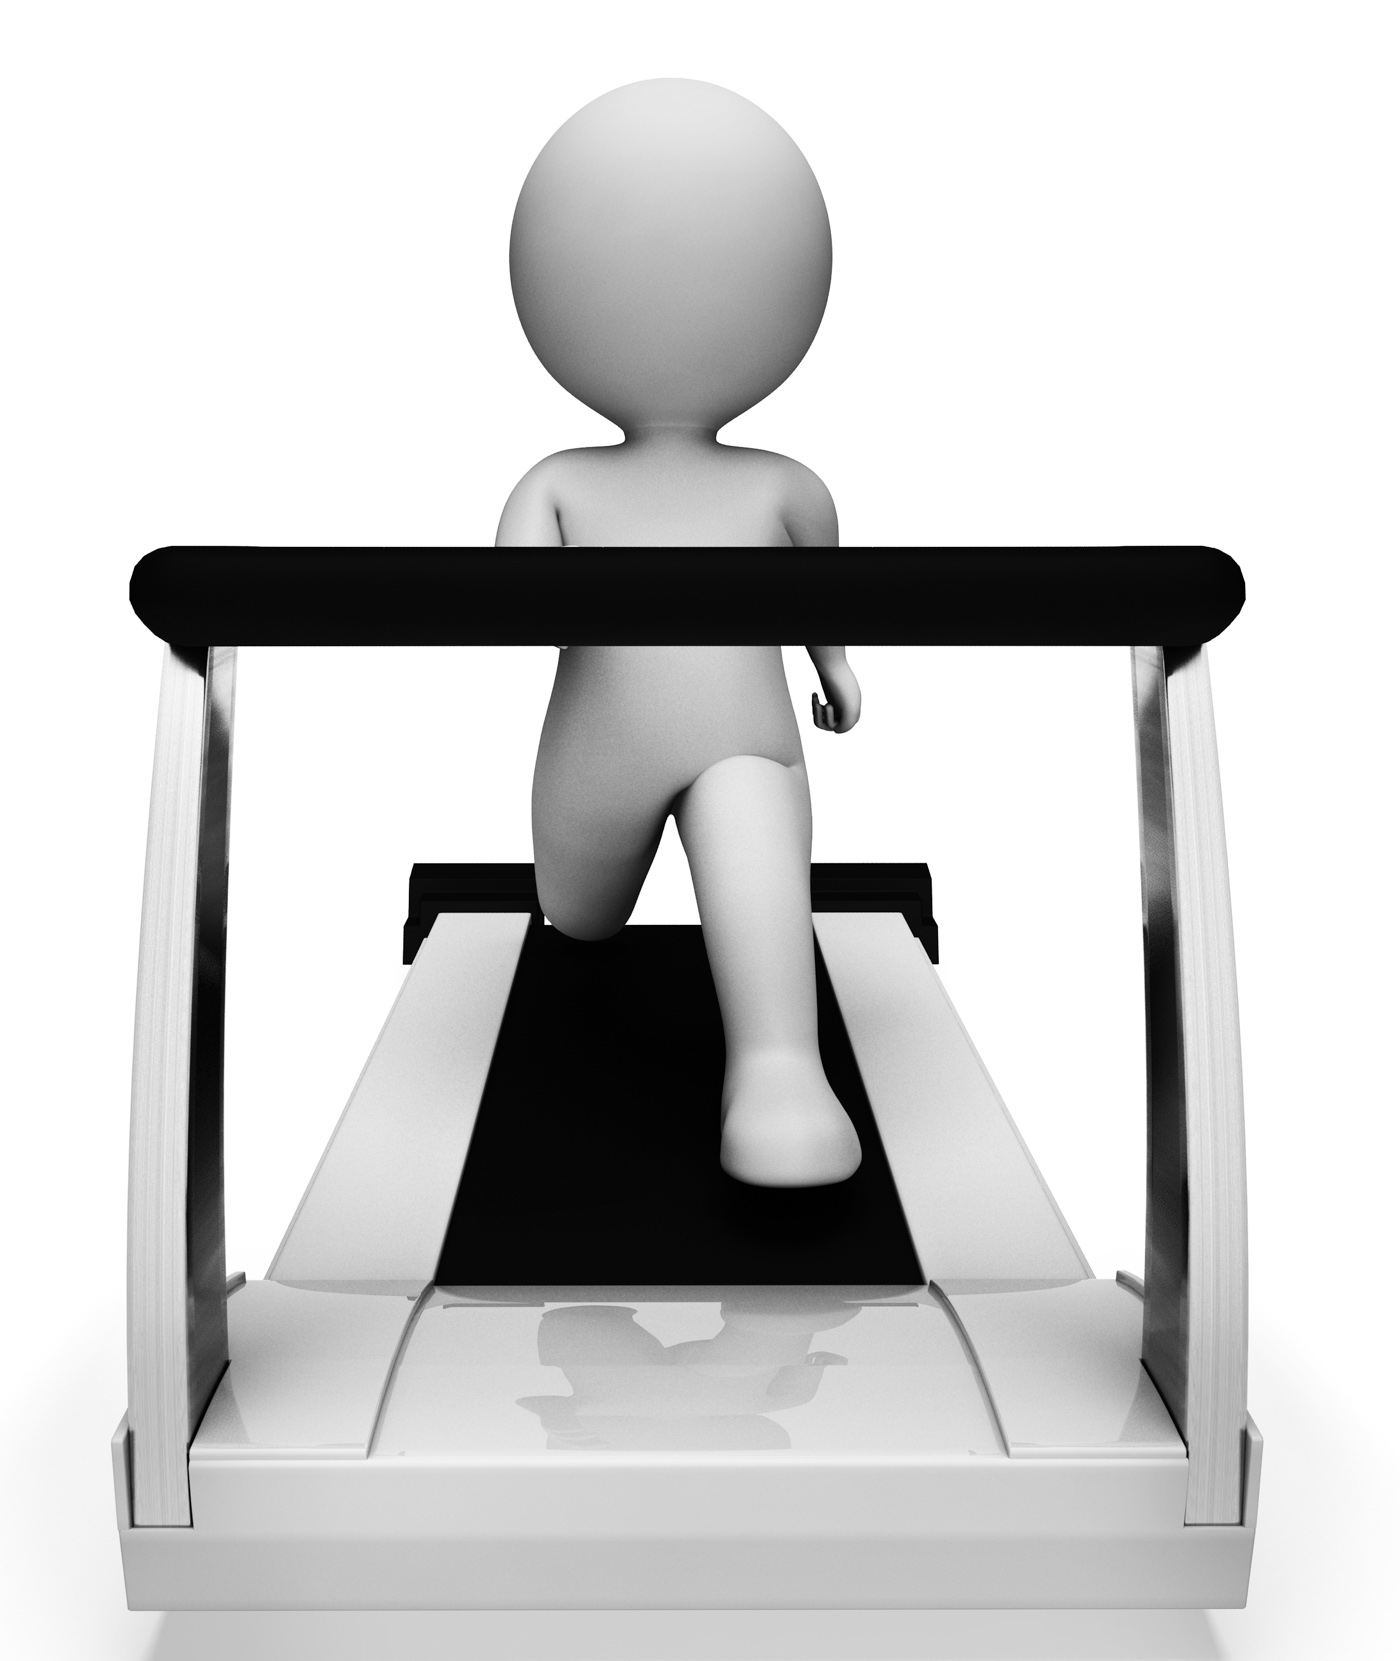 Gym Running Shows Getting Fit And Exercised 3d Rendering, OtherKeywords, Workingout, Work-out, Training, HQ Photo